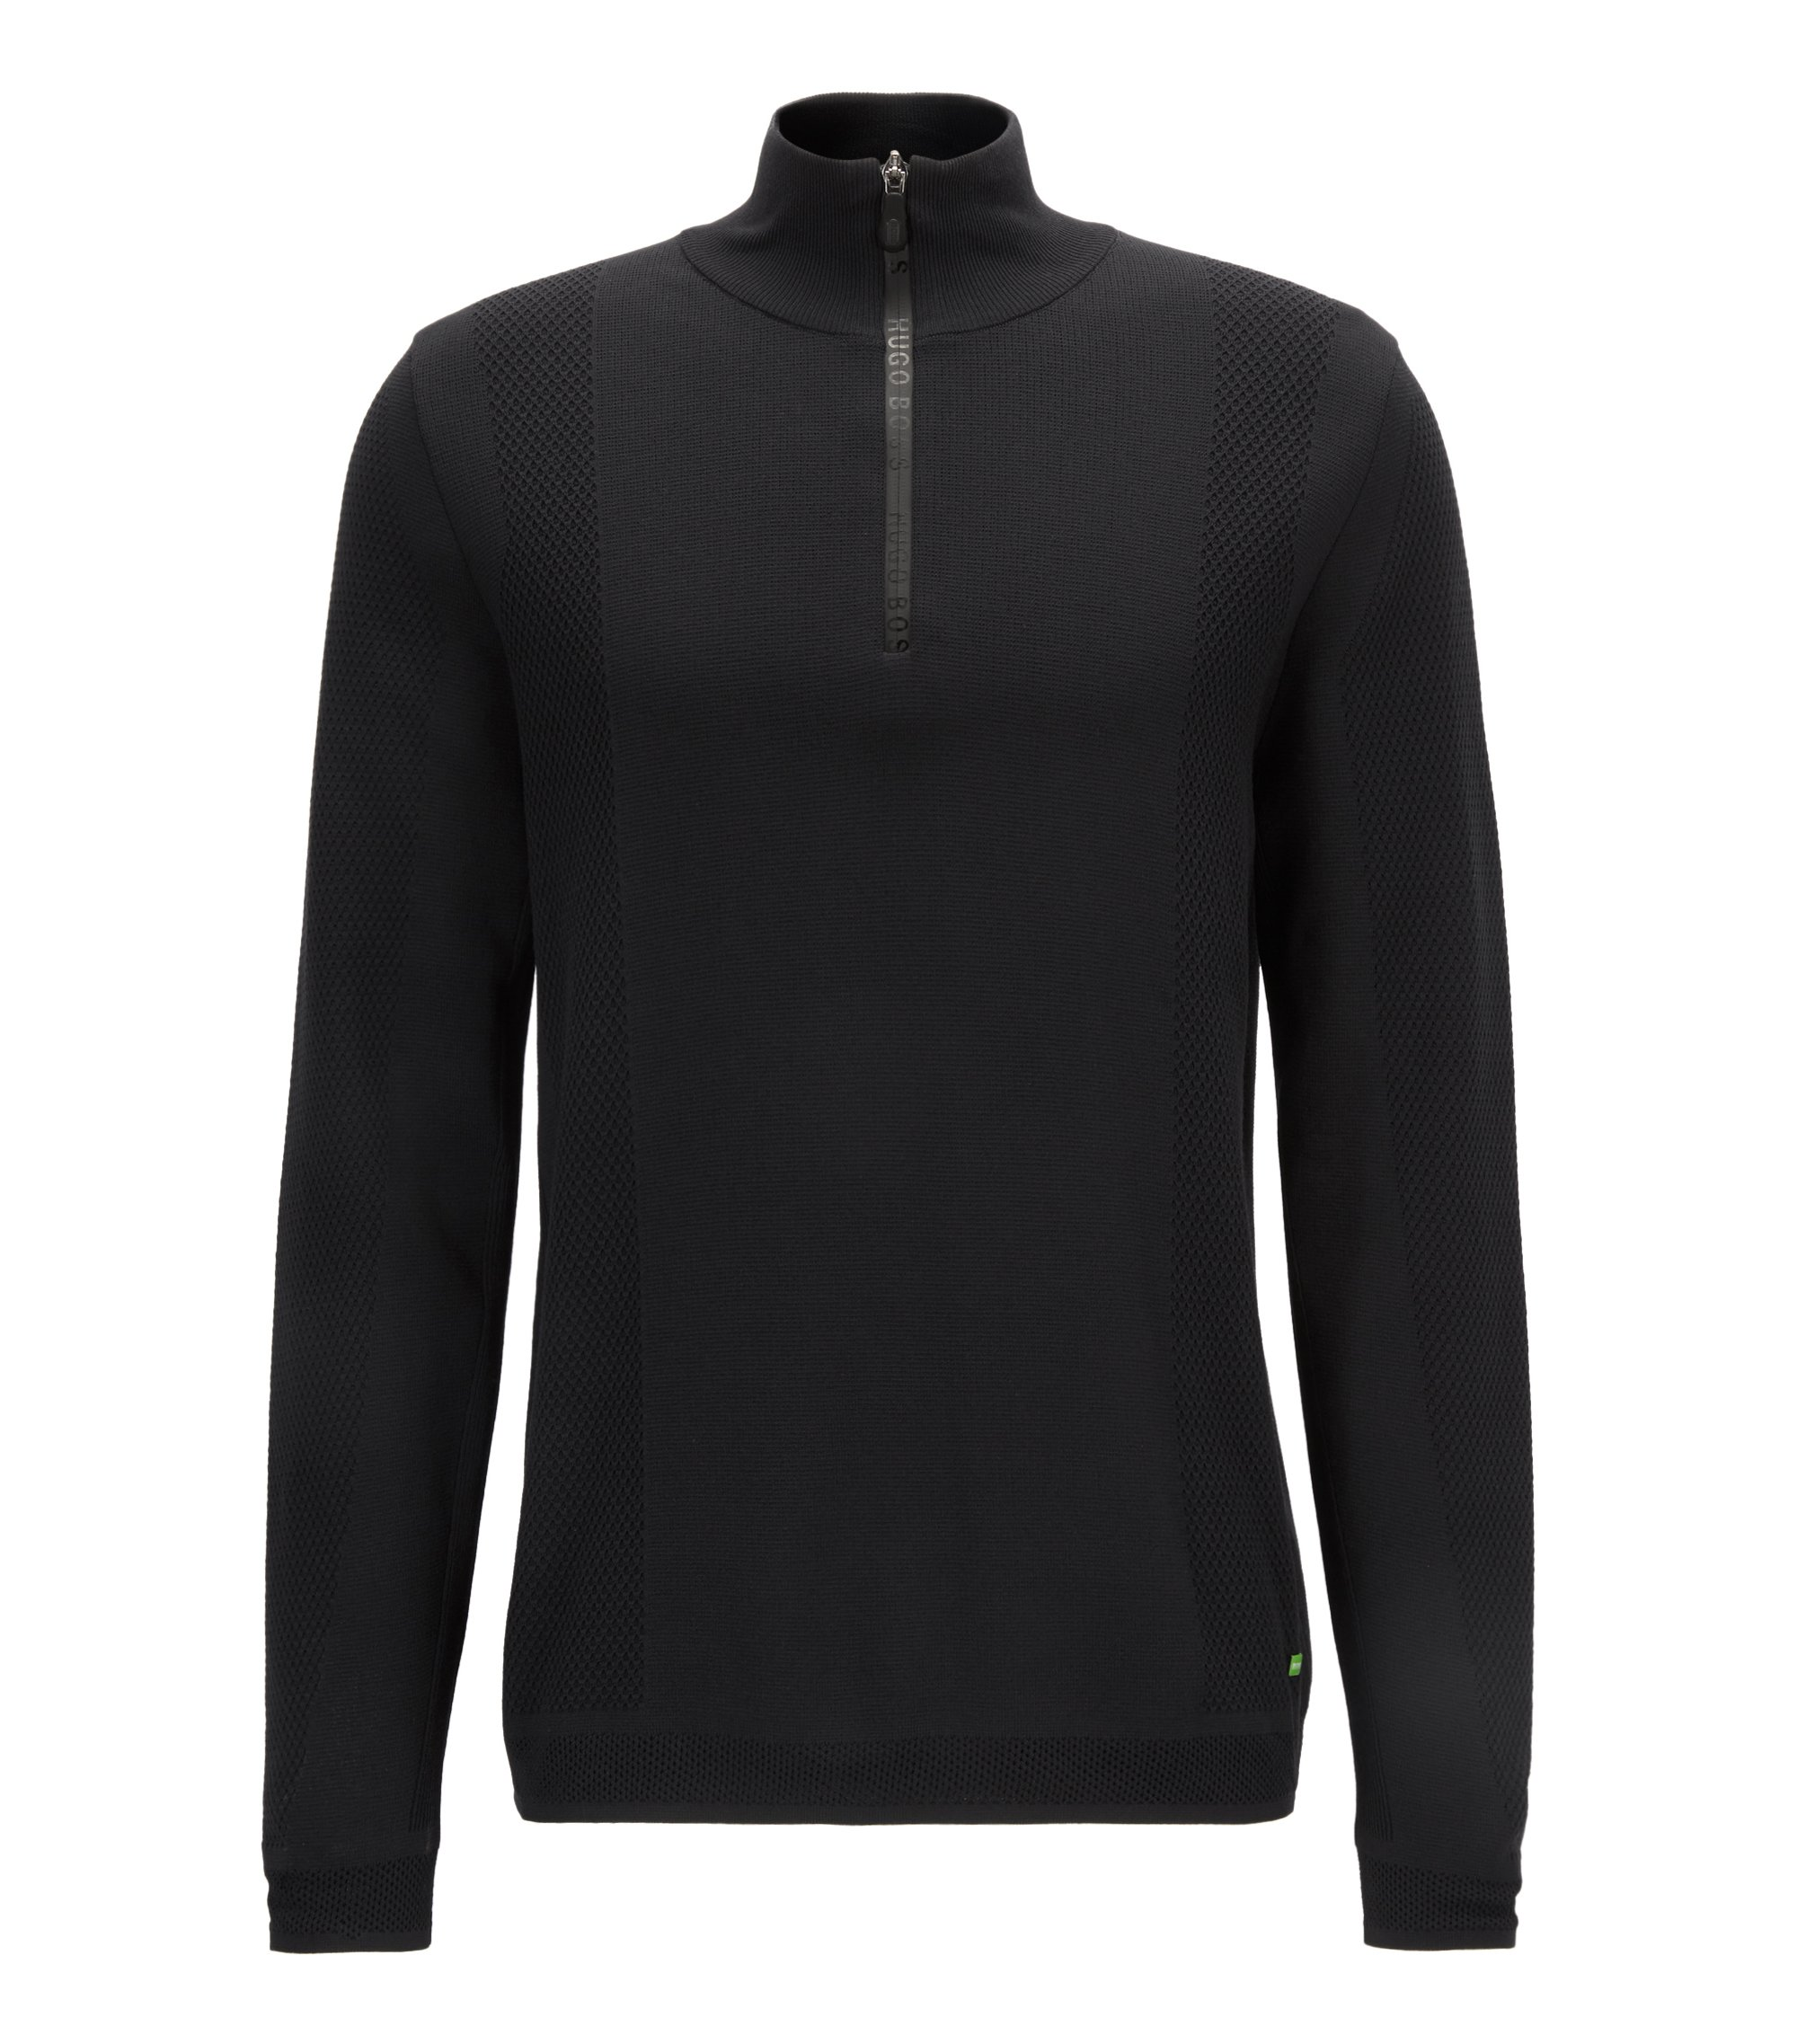 Zip-neck sweater in double-faced fabric, Black